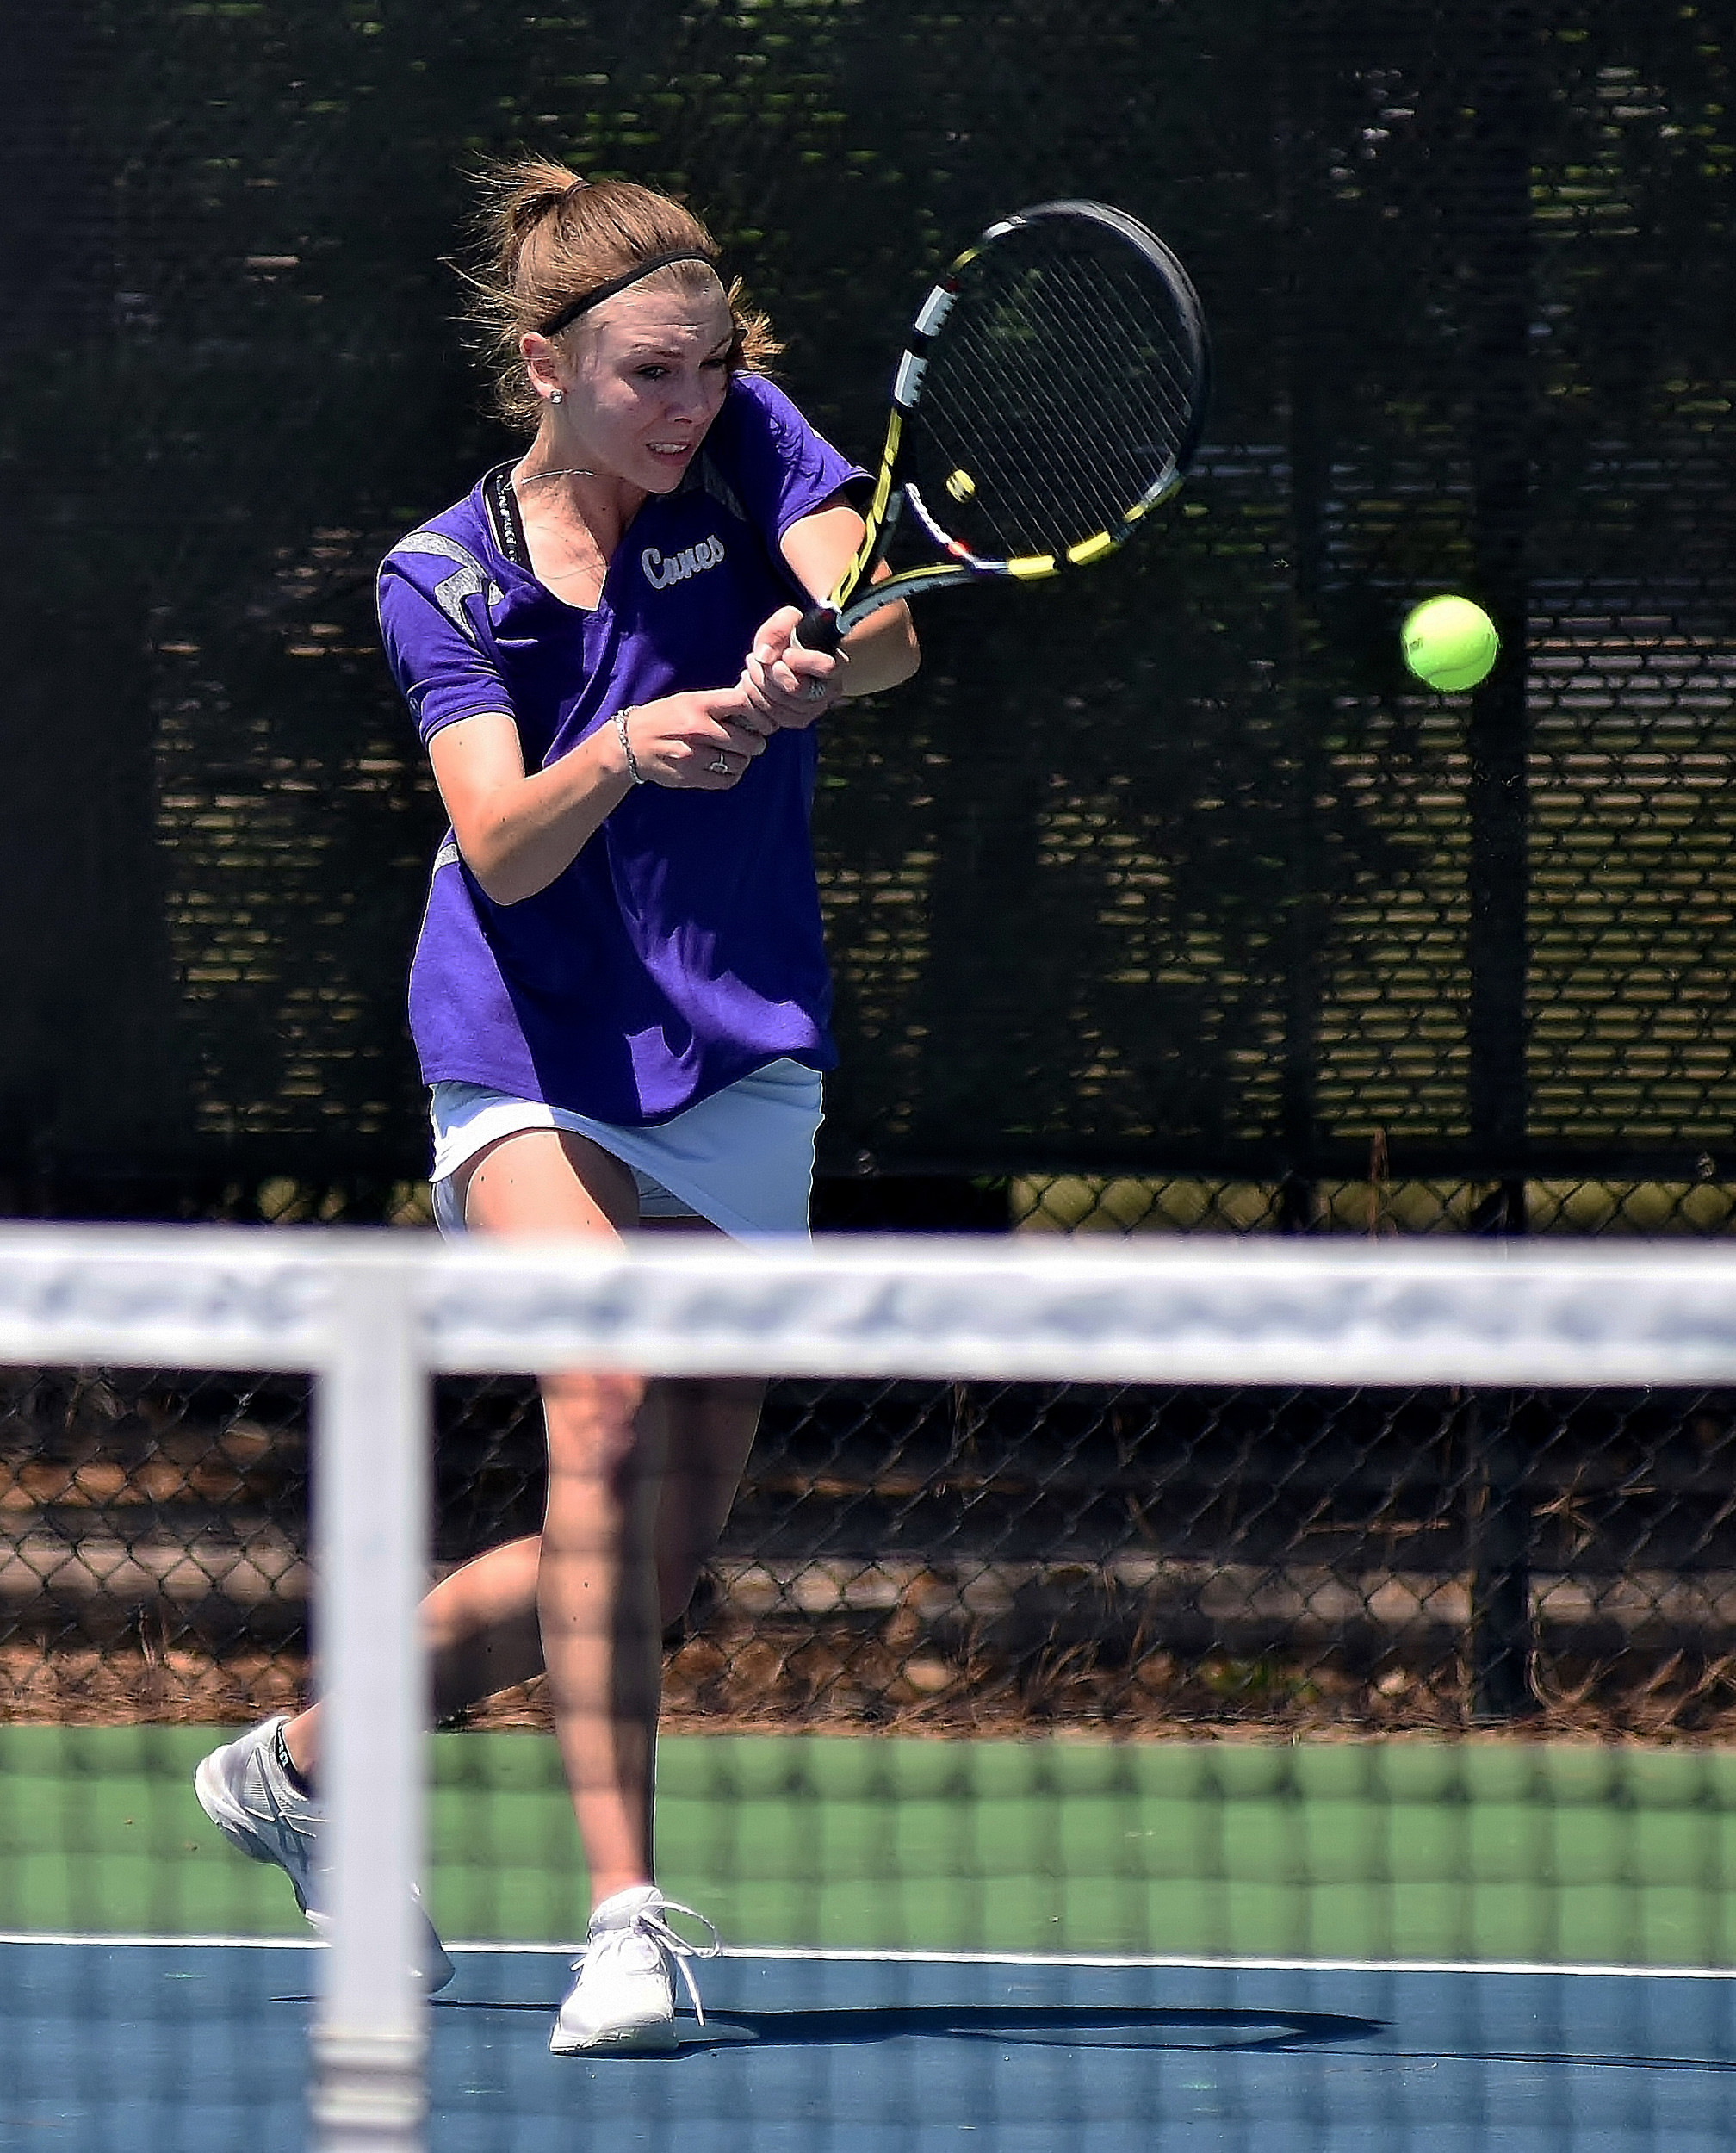 Cartersville senior Emma McCary fires a return during her 6-0, 6-0 win on Line 2 singles in the quarterfinals of the GHSA Class 4A state tournament Friday at Dellinger Park. McCary provided the lone win on the day for the Canes, who fell to Columbus by a 3-1 score.